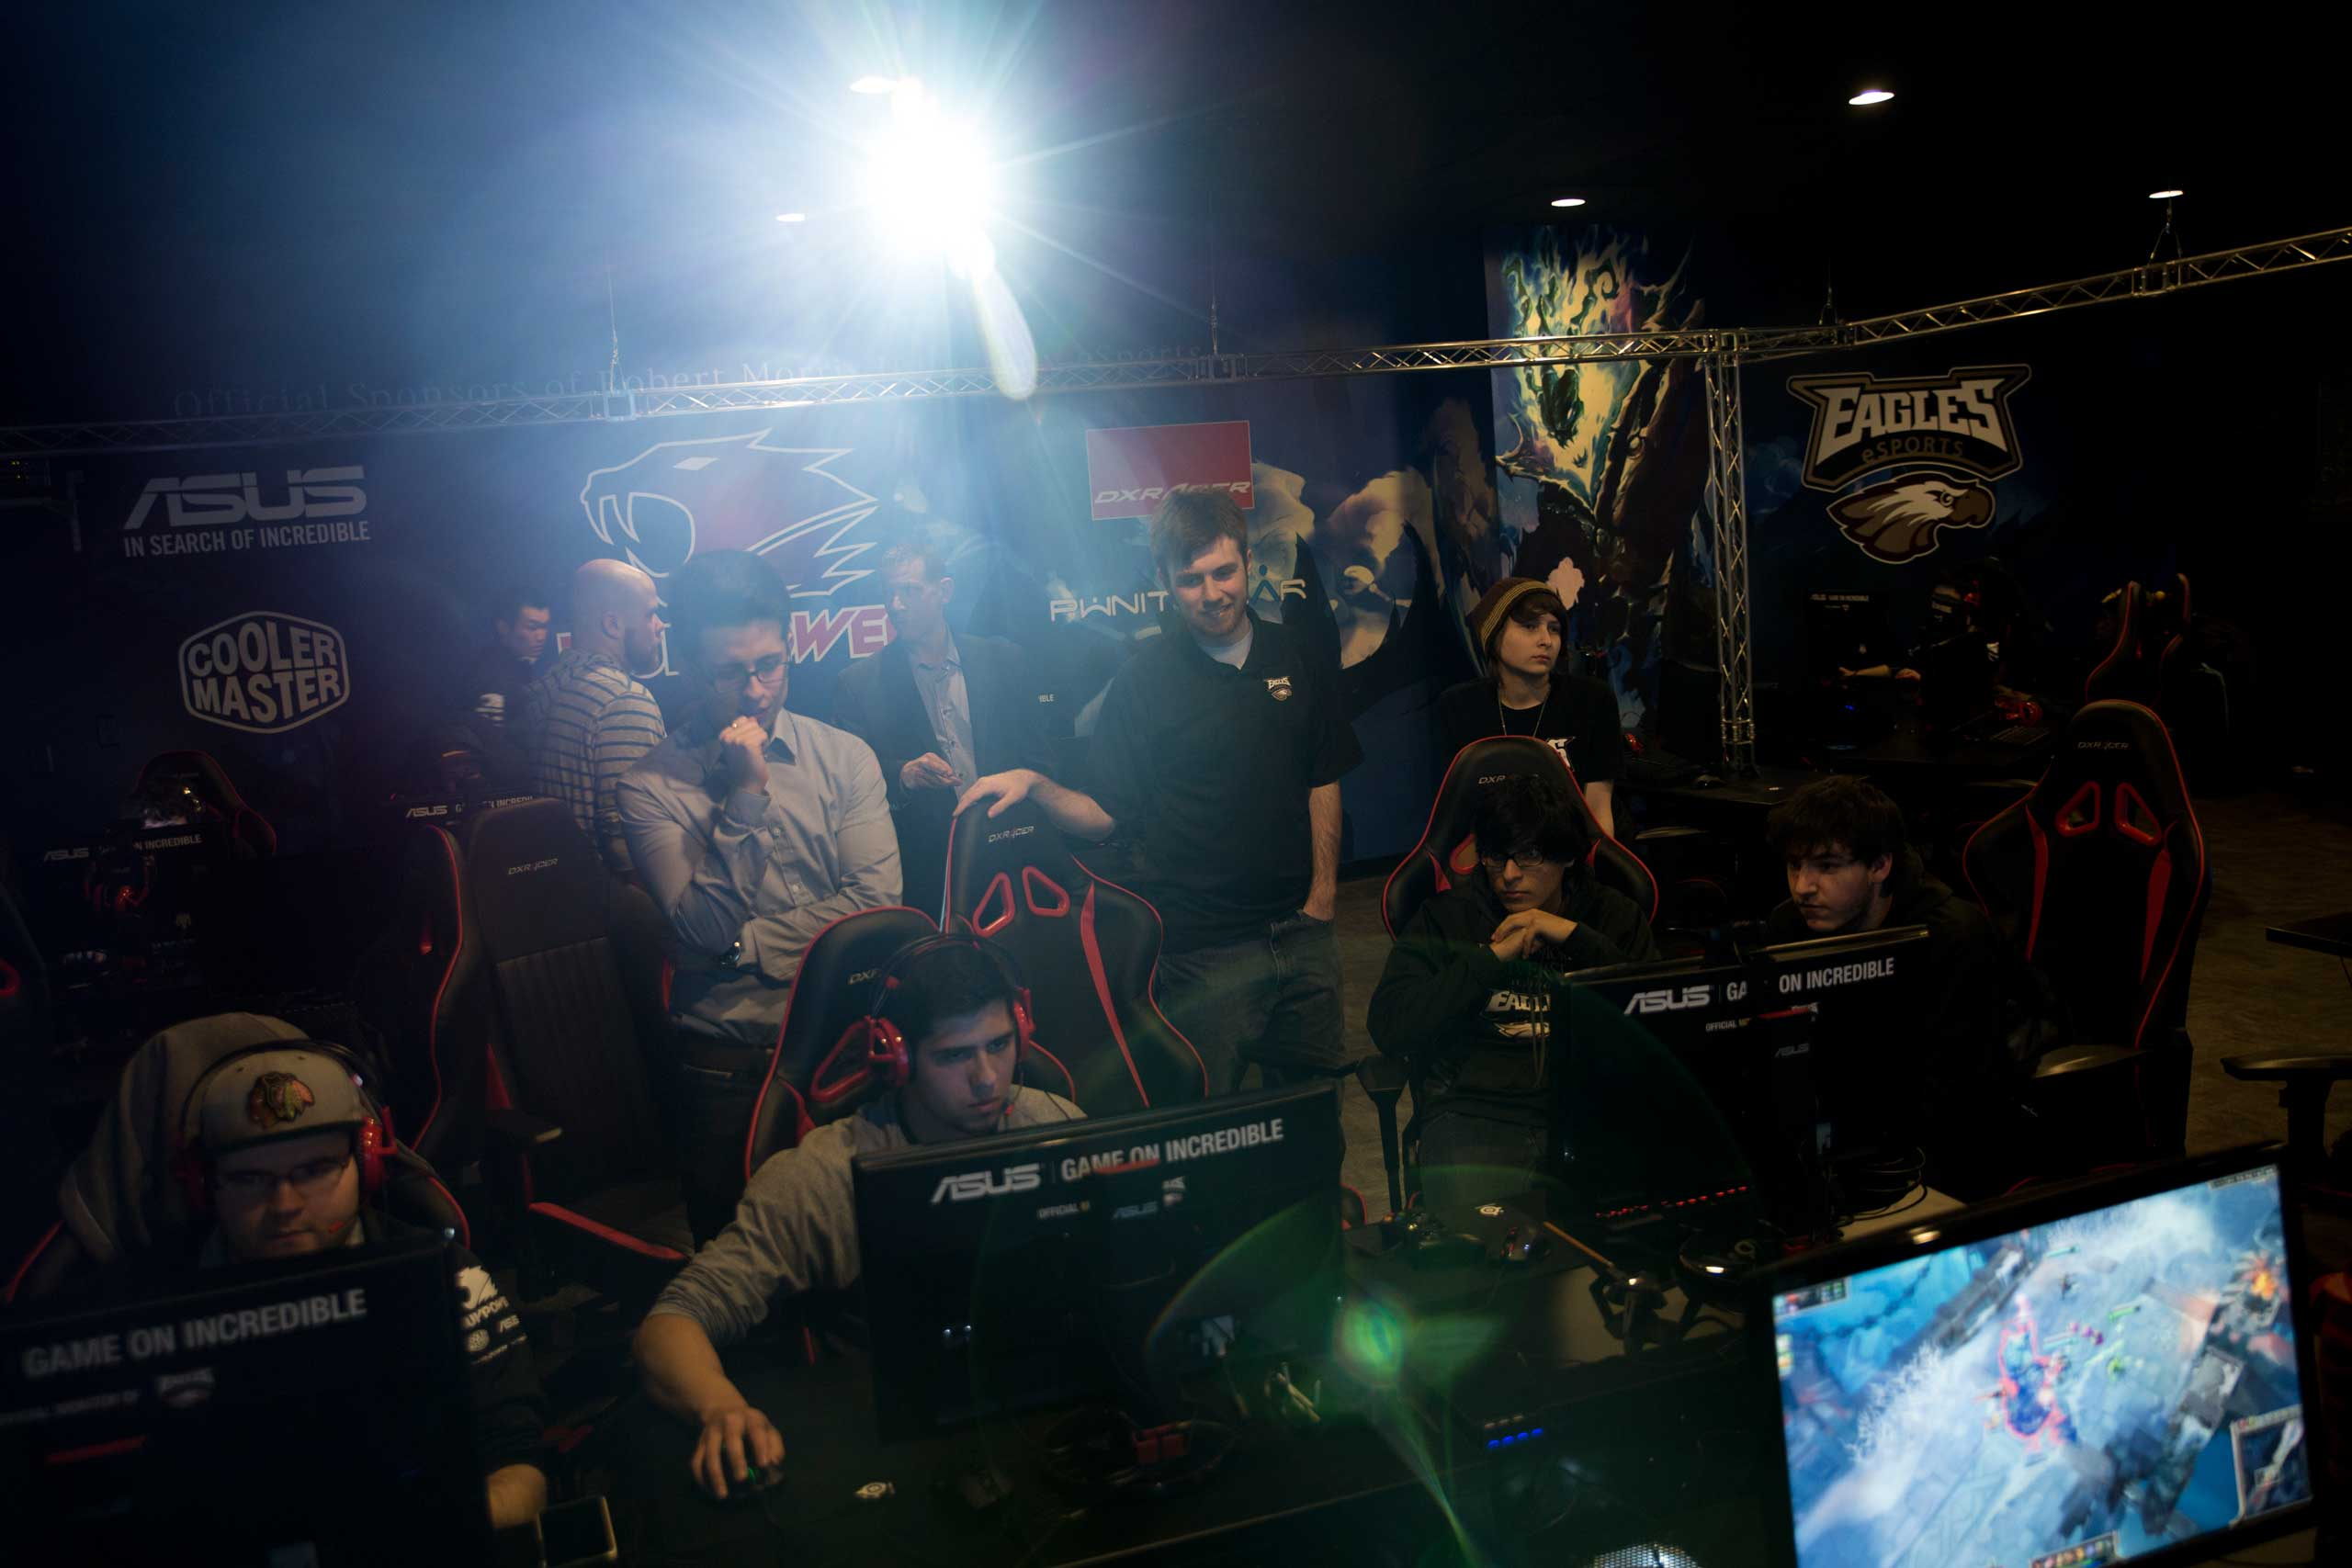 Student video game athletes play <i>League of Legends</i> and other games in Robert Morris University's video game practice space in Chicago, March 18, 2015.